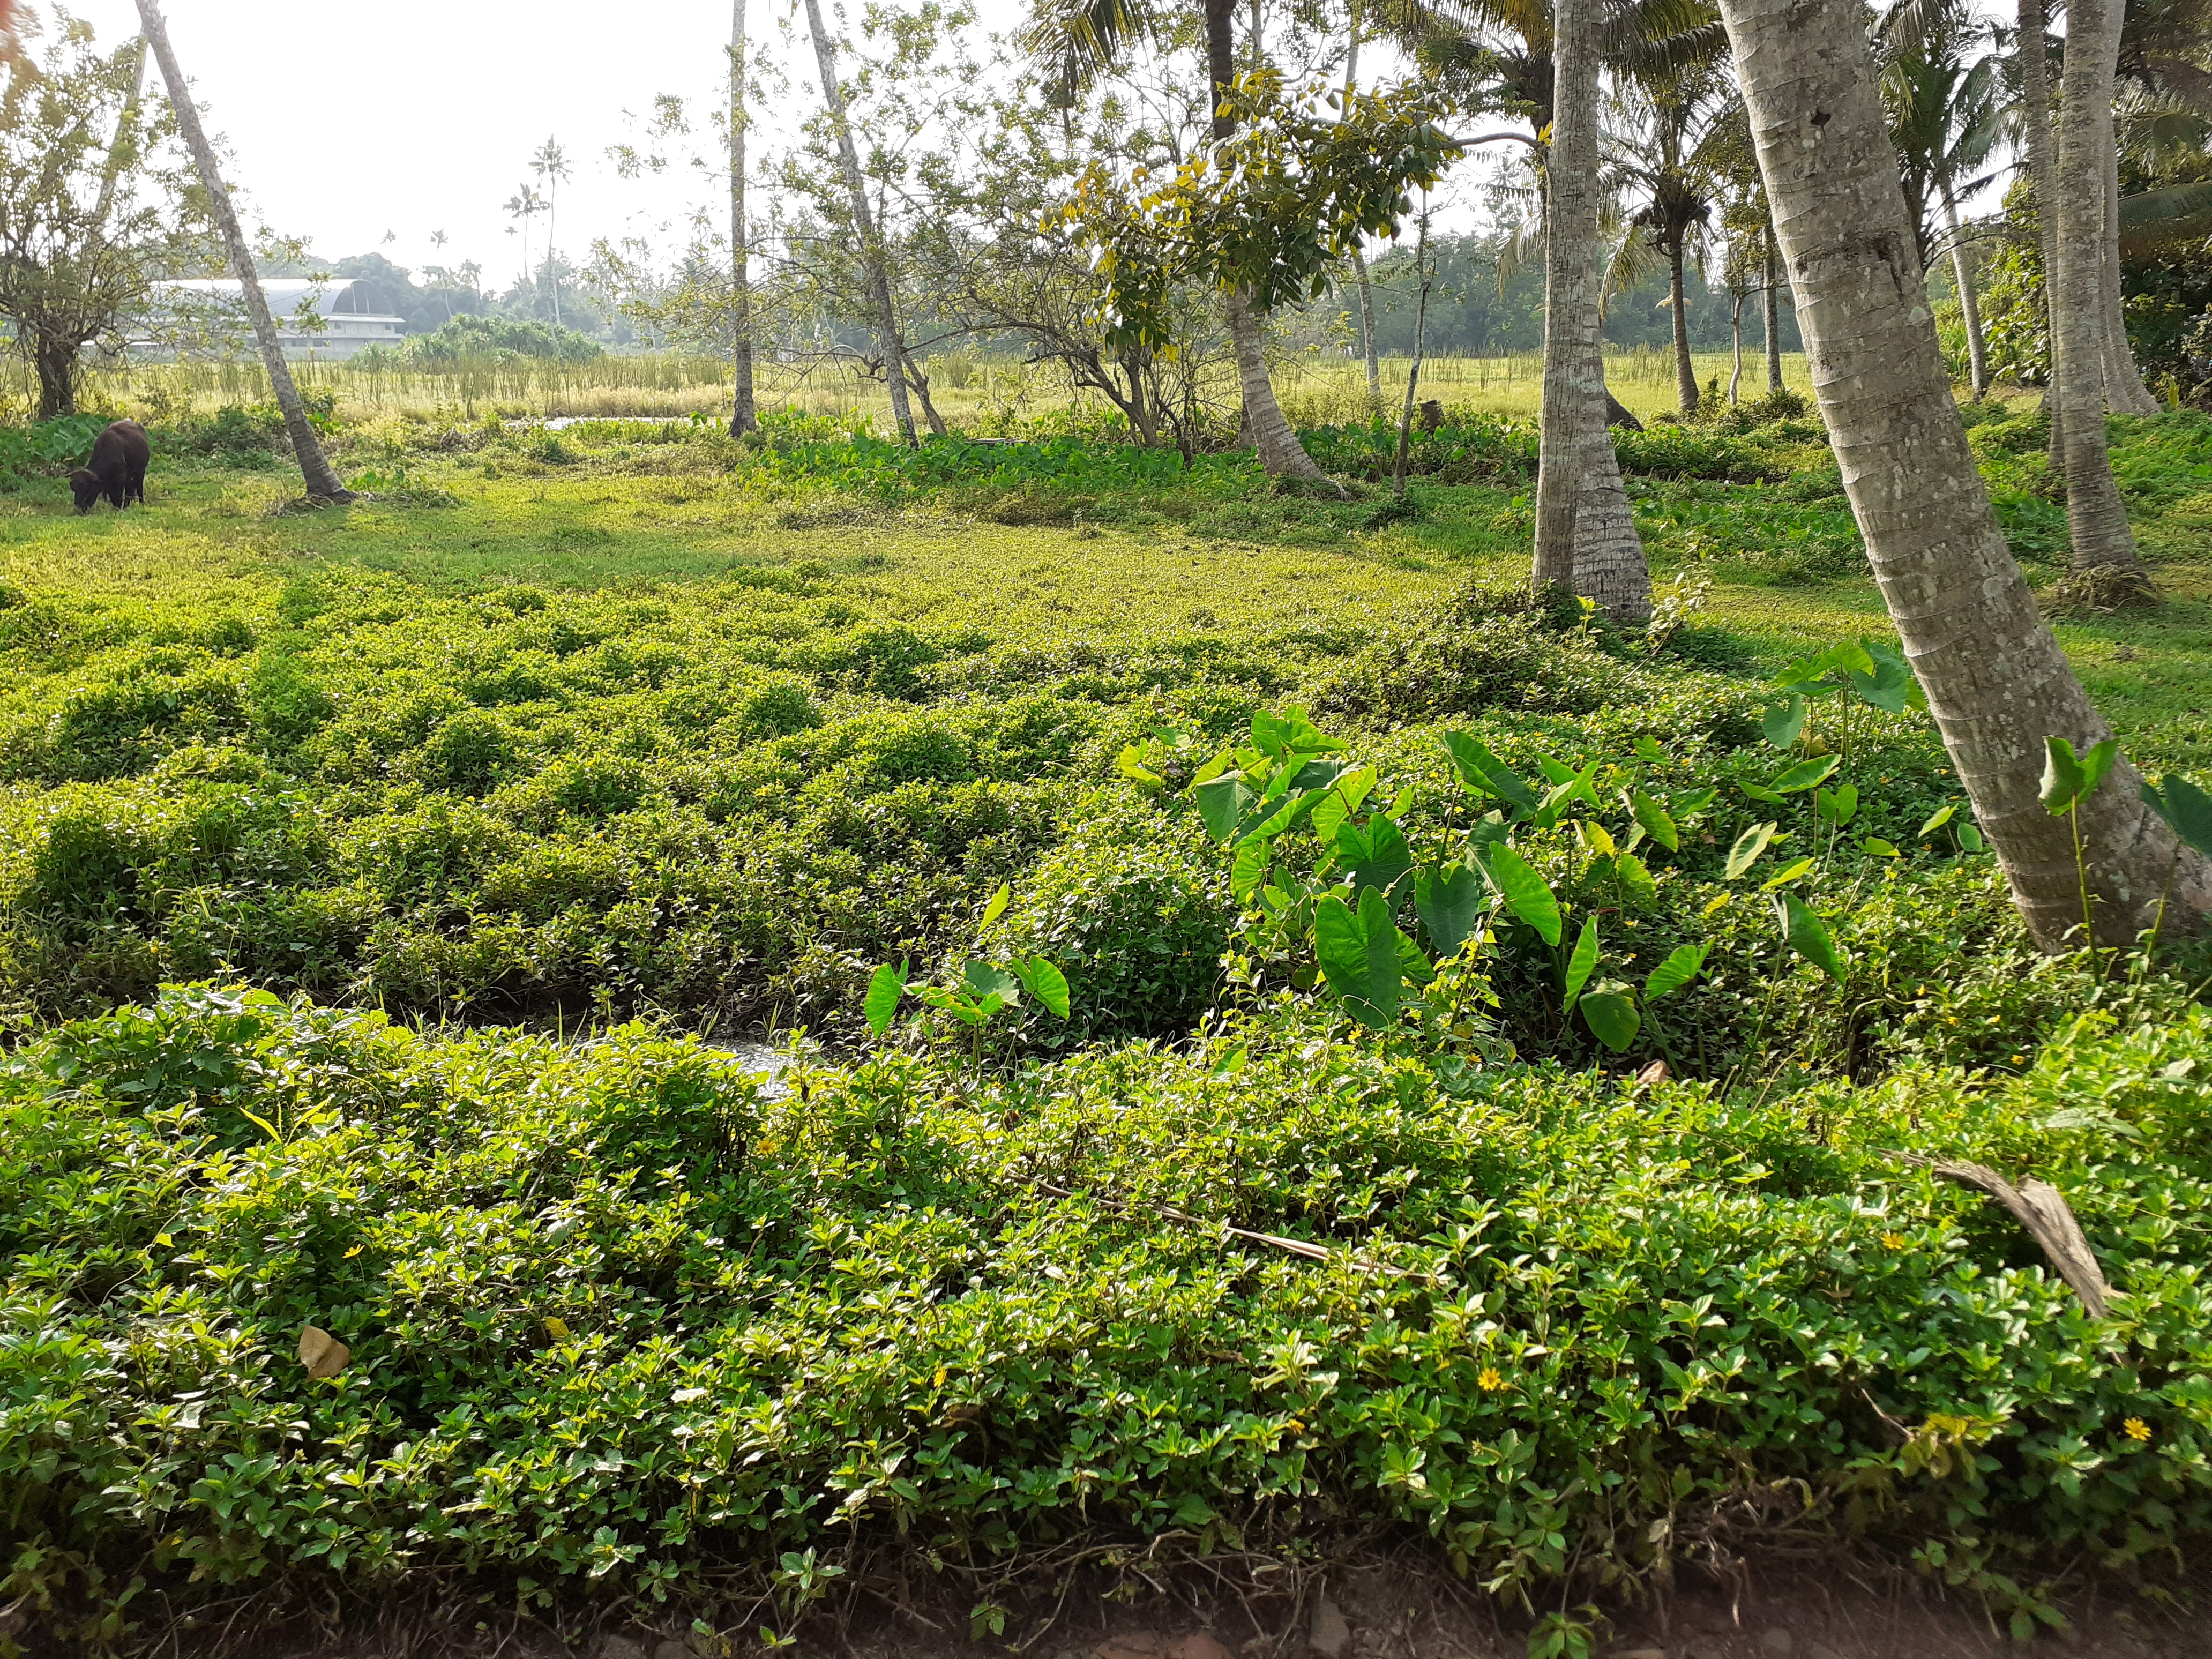 Land For Sale in Thuravoor Alappuzha